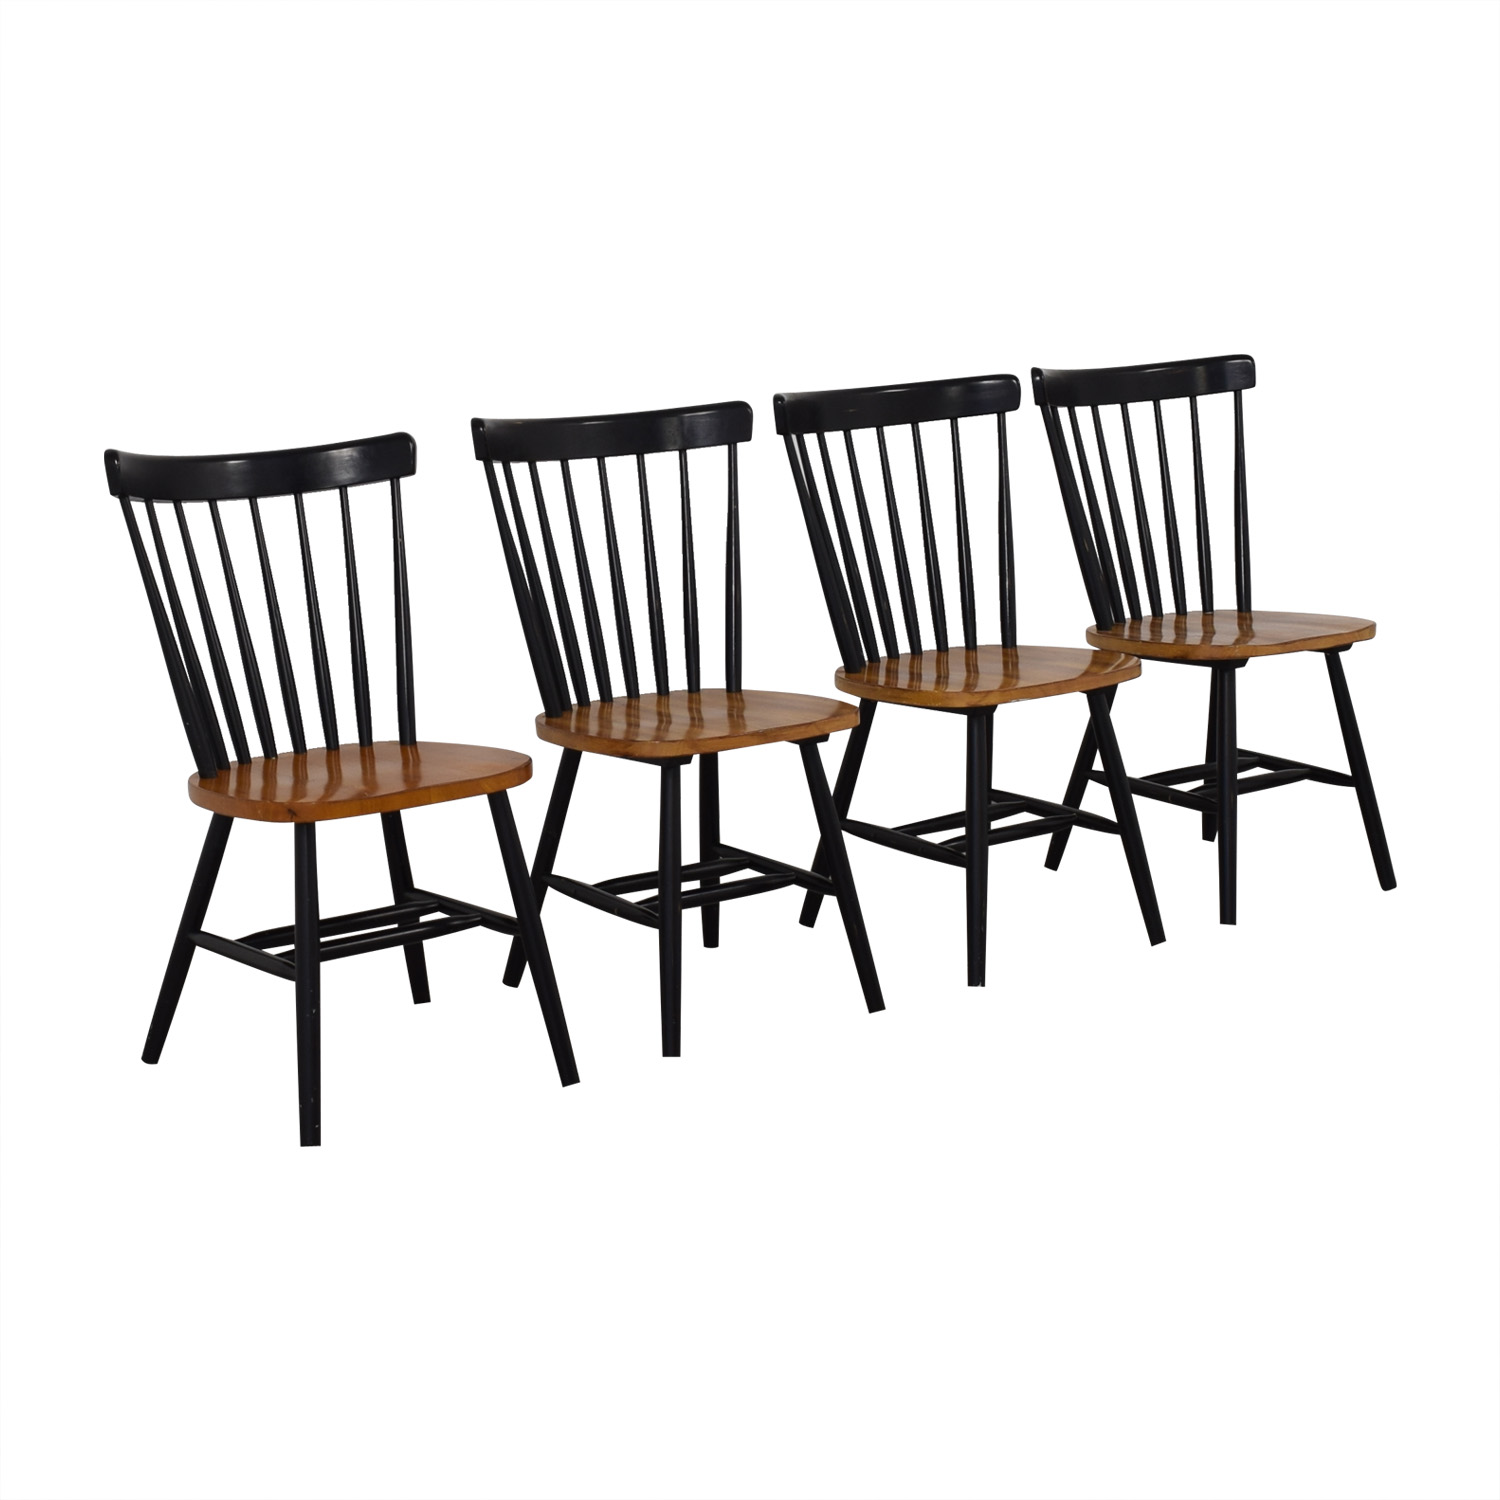 Copenhagen Spindle Back Dining Chairs / Dining Chairs